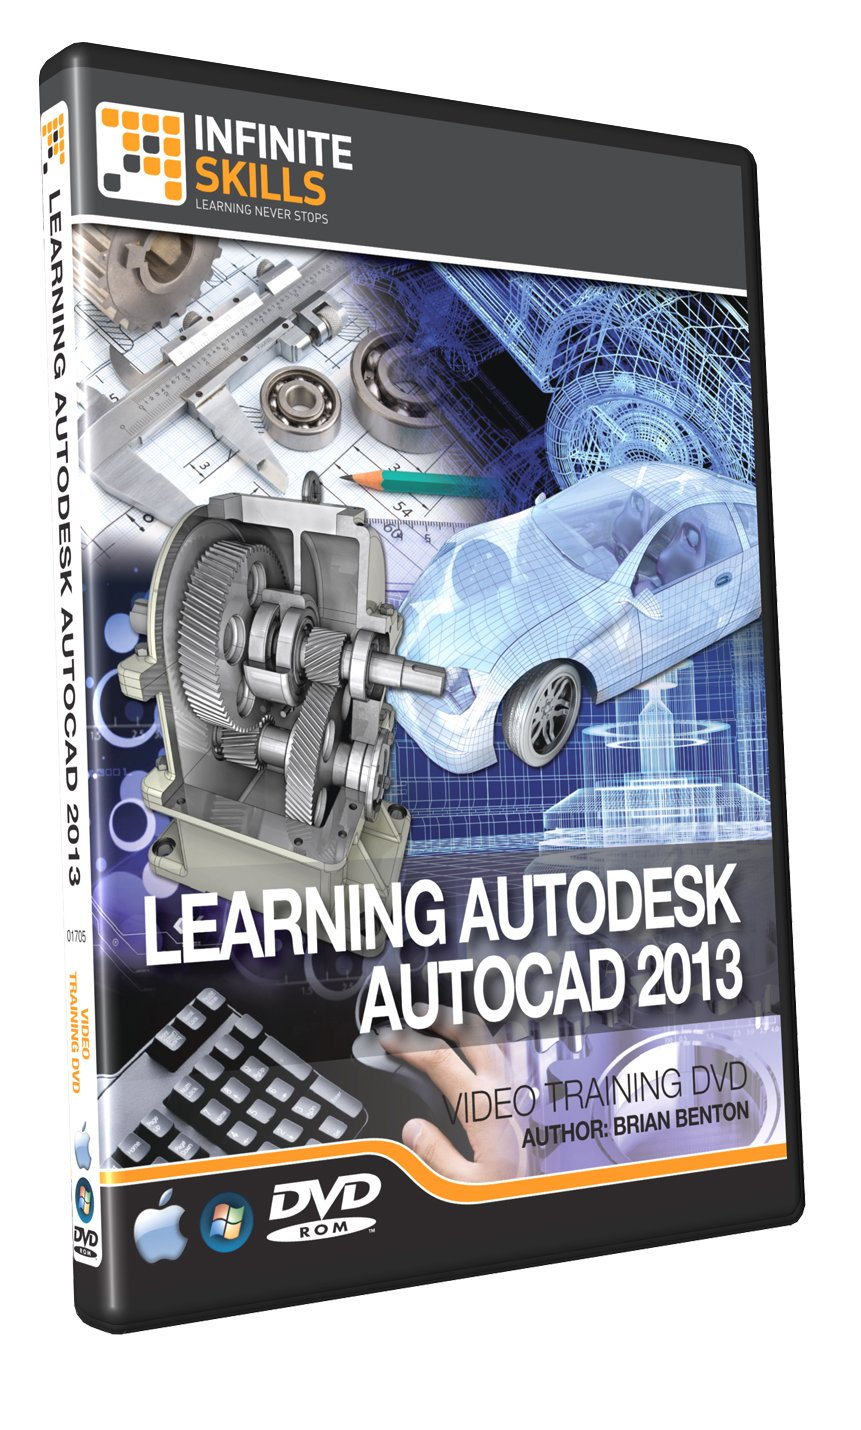 Amazon autocad 2013 training dvd tutorial video baditri Image collections